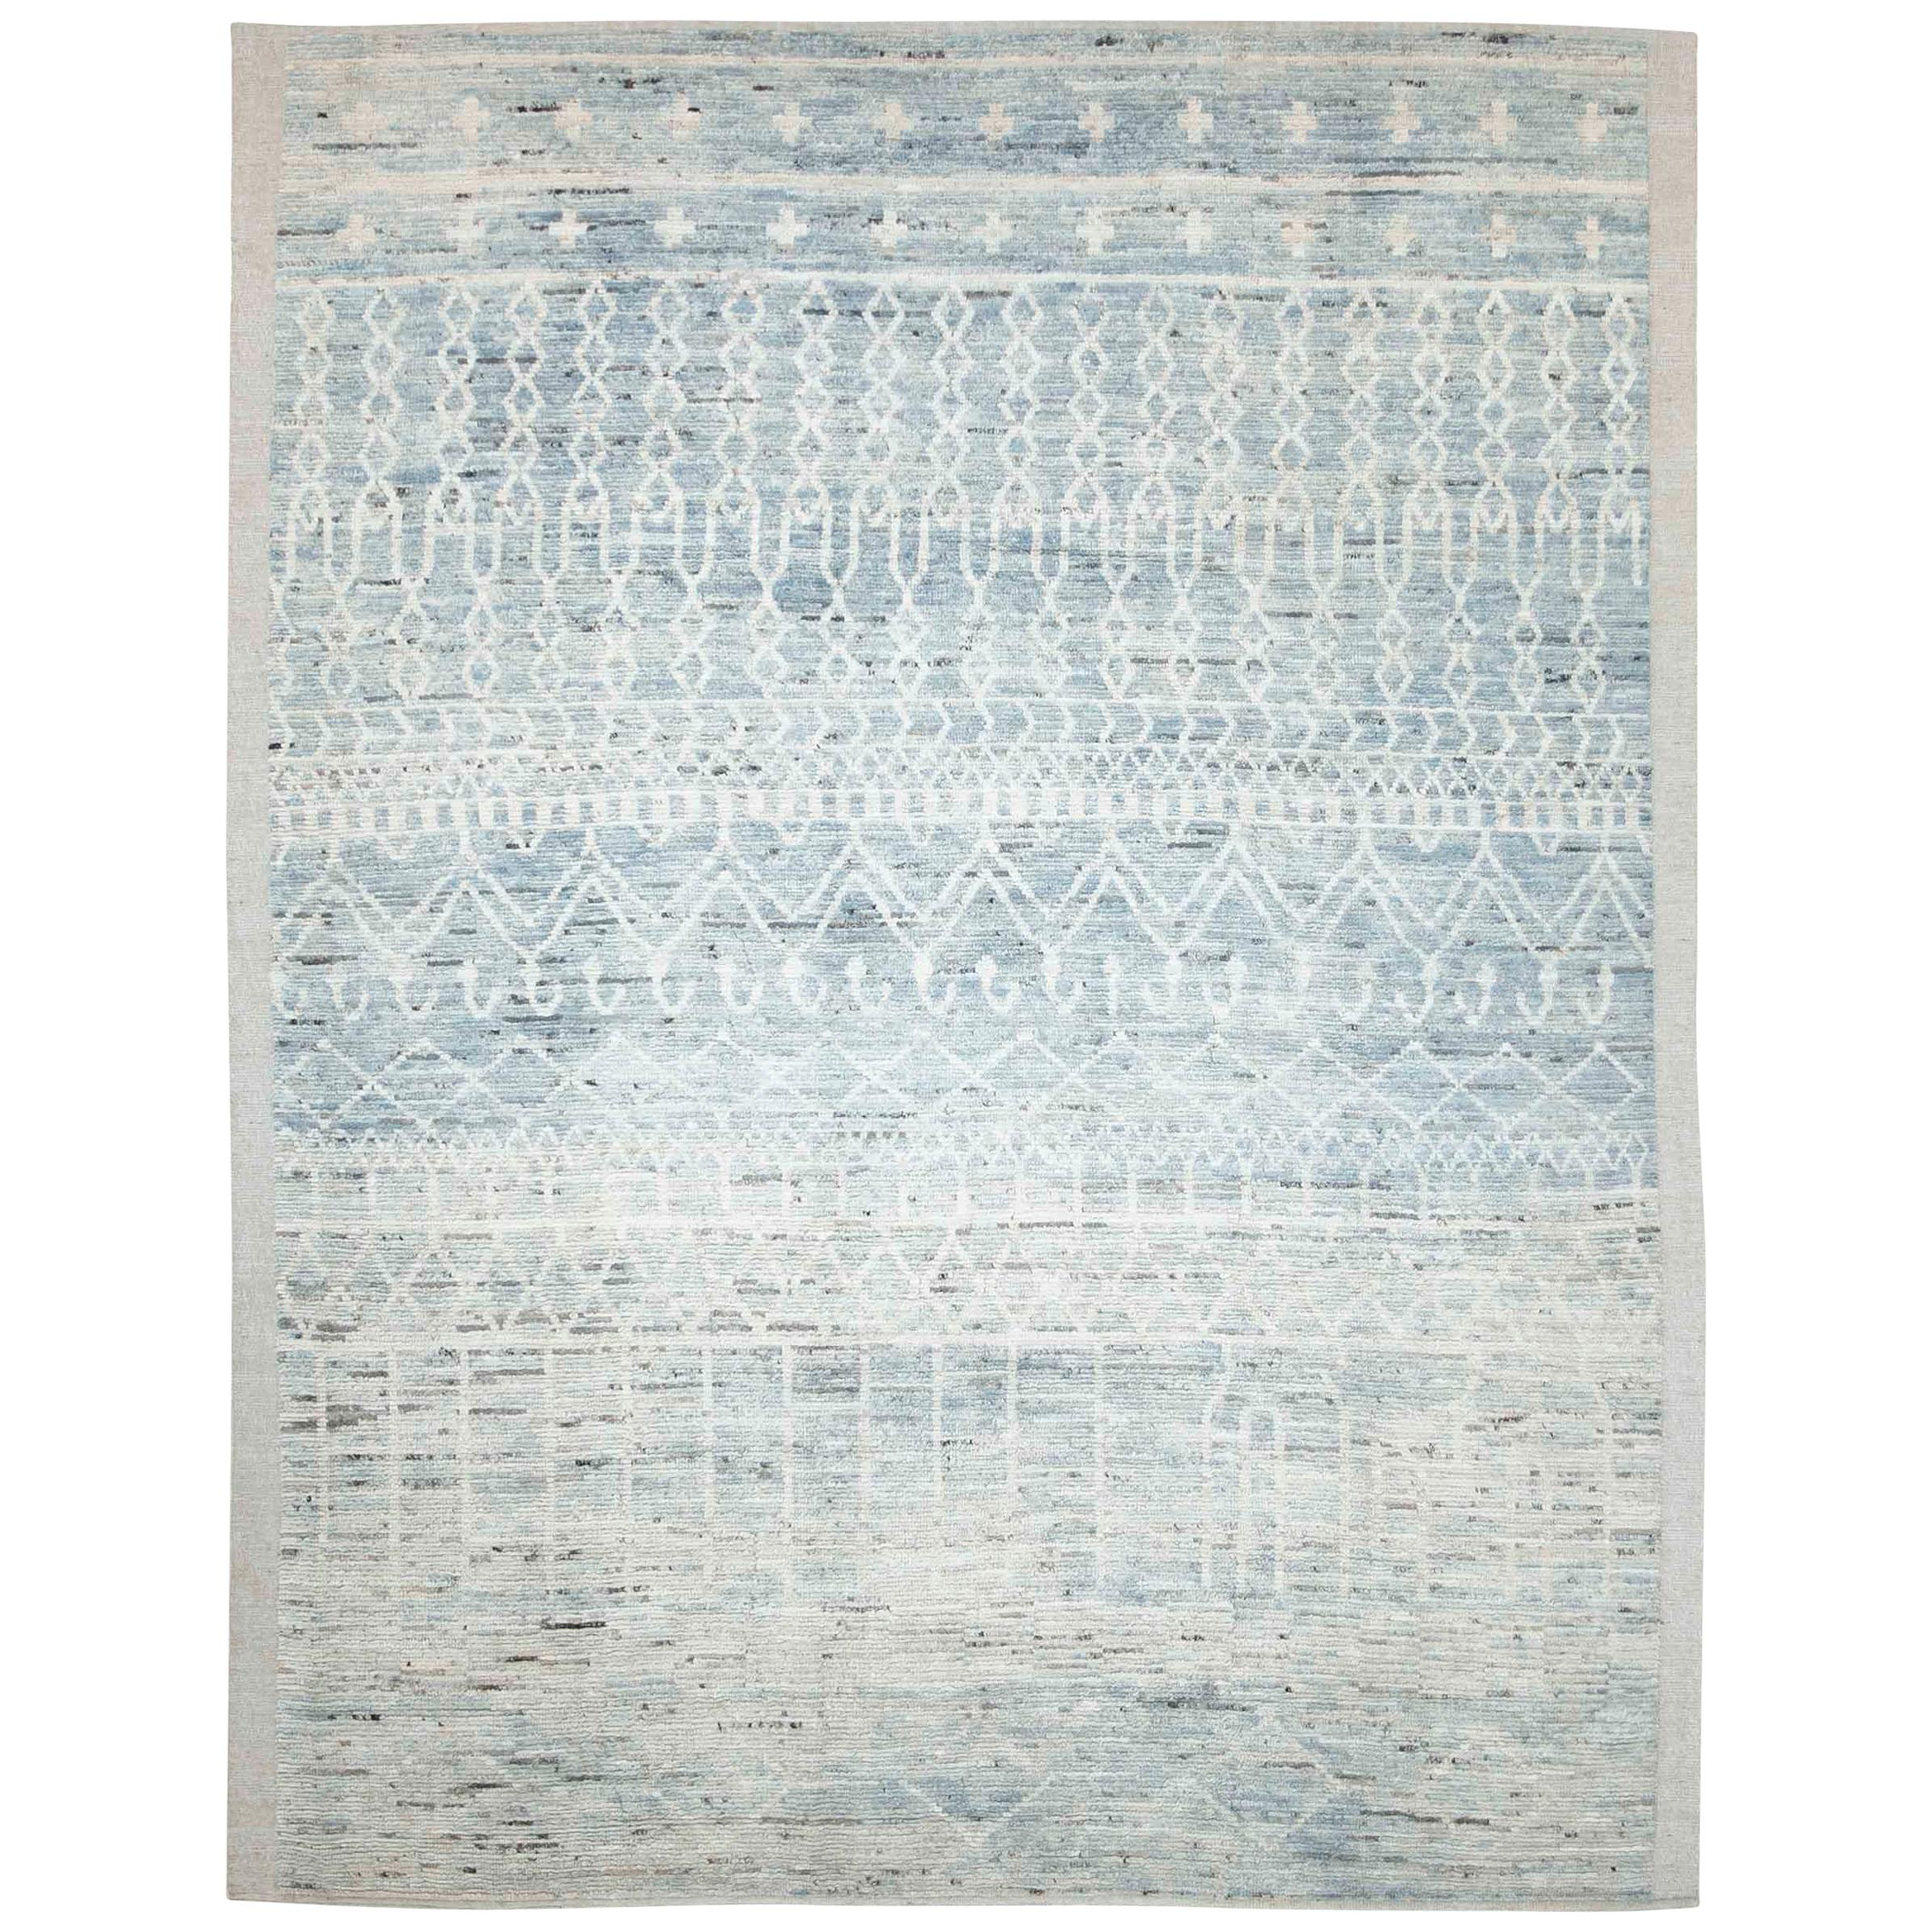 Modern Afghan Moroccan Style Rug with Tribal Details in Ivory and Blue